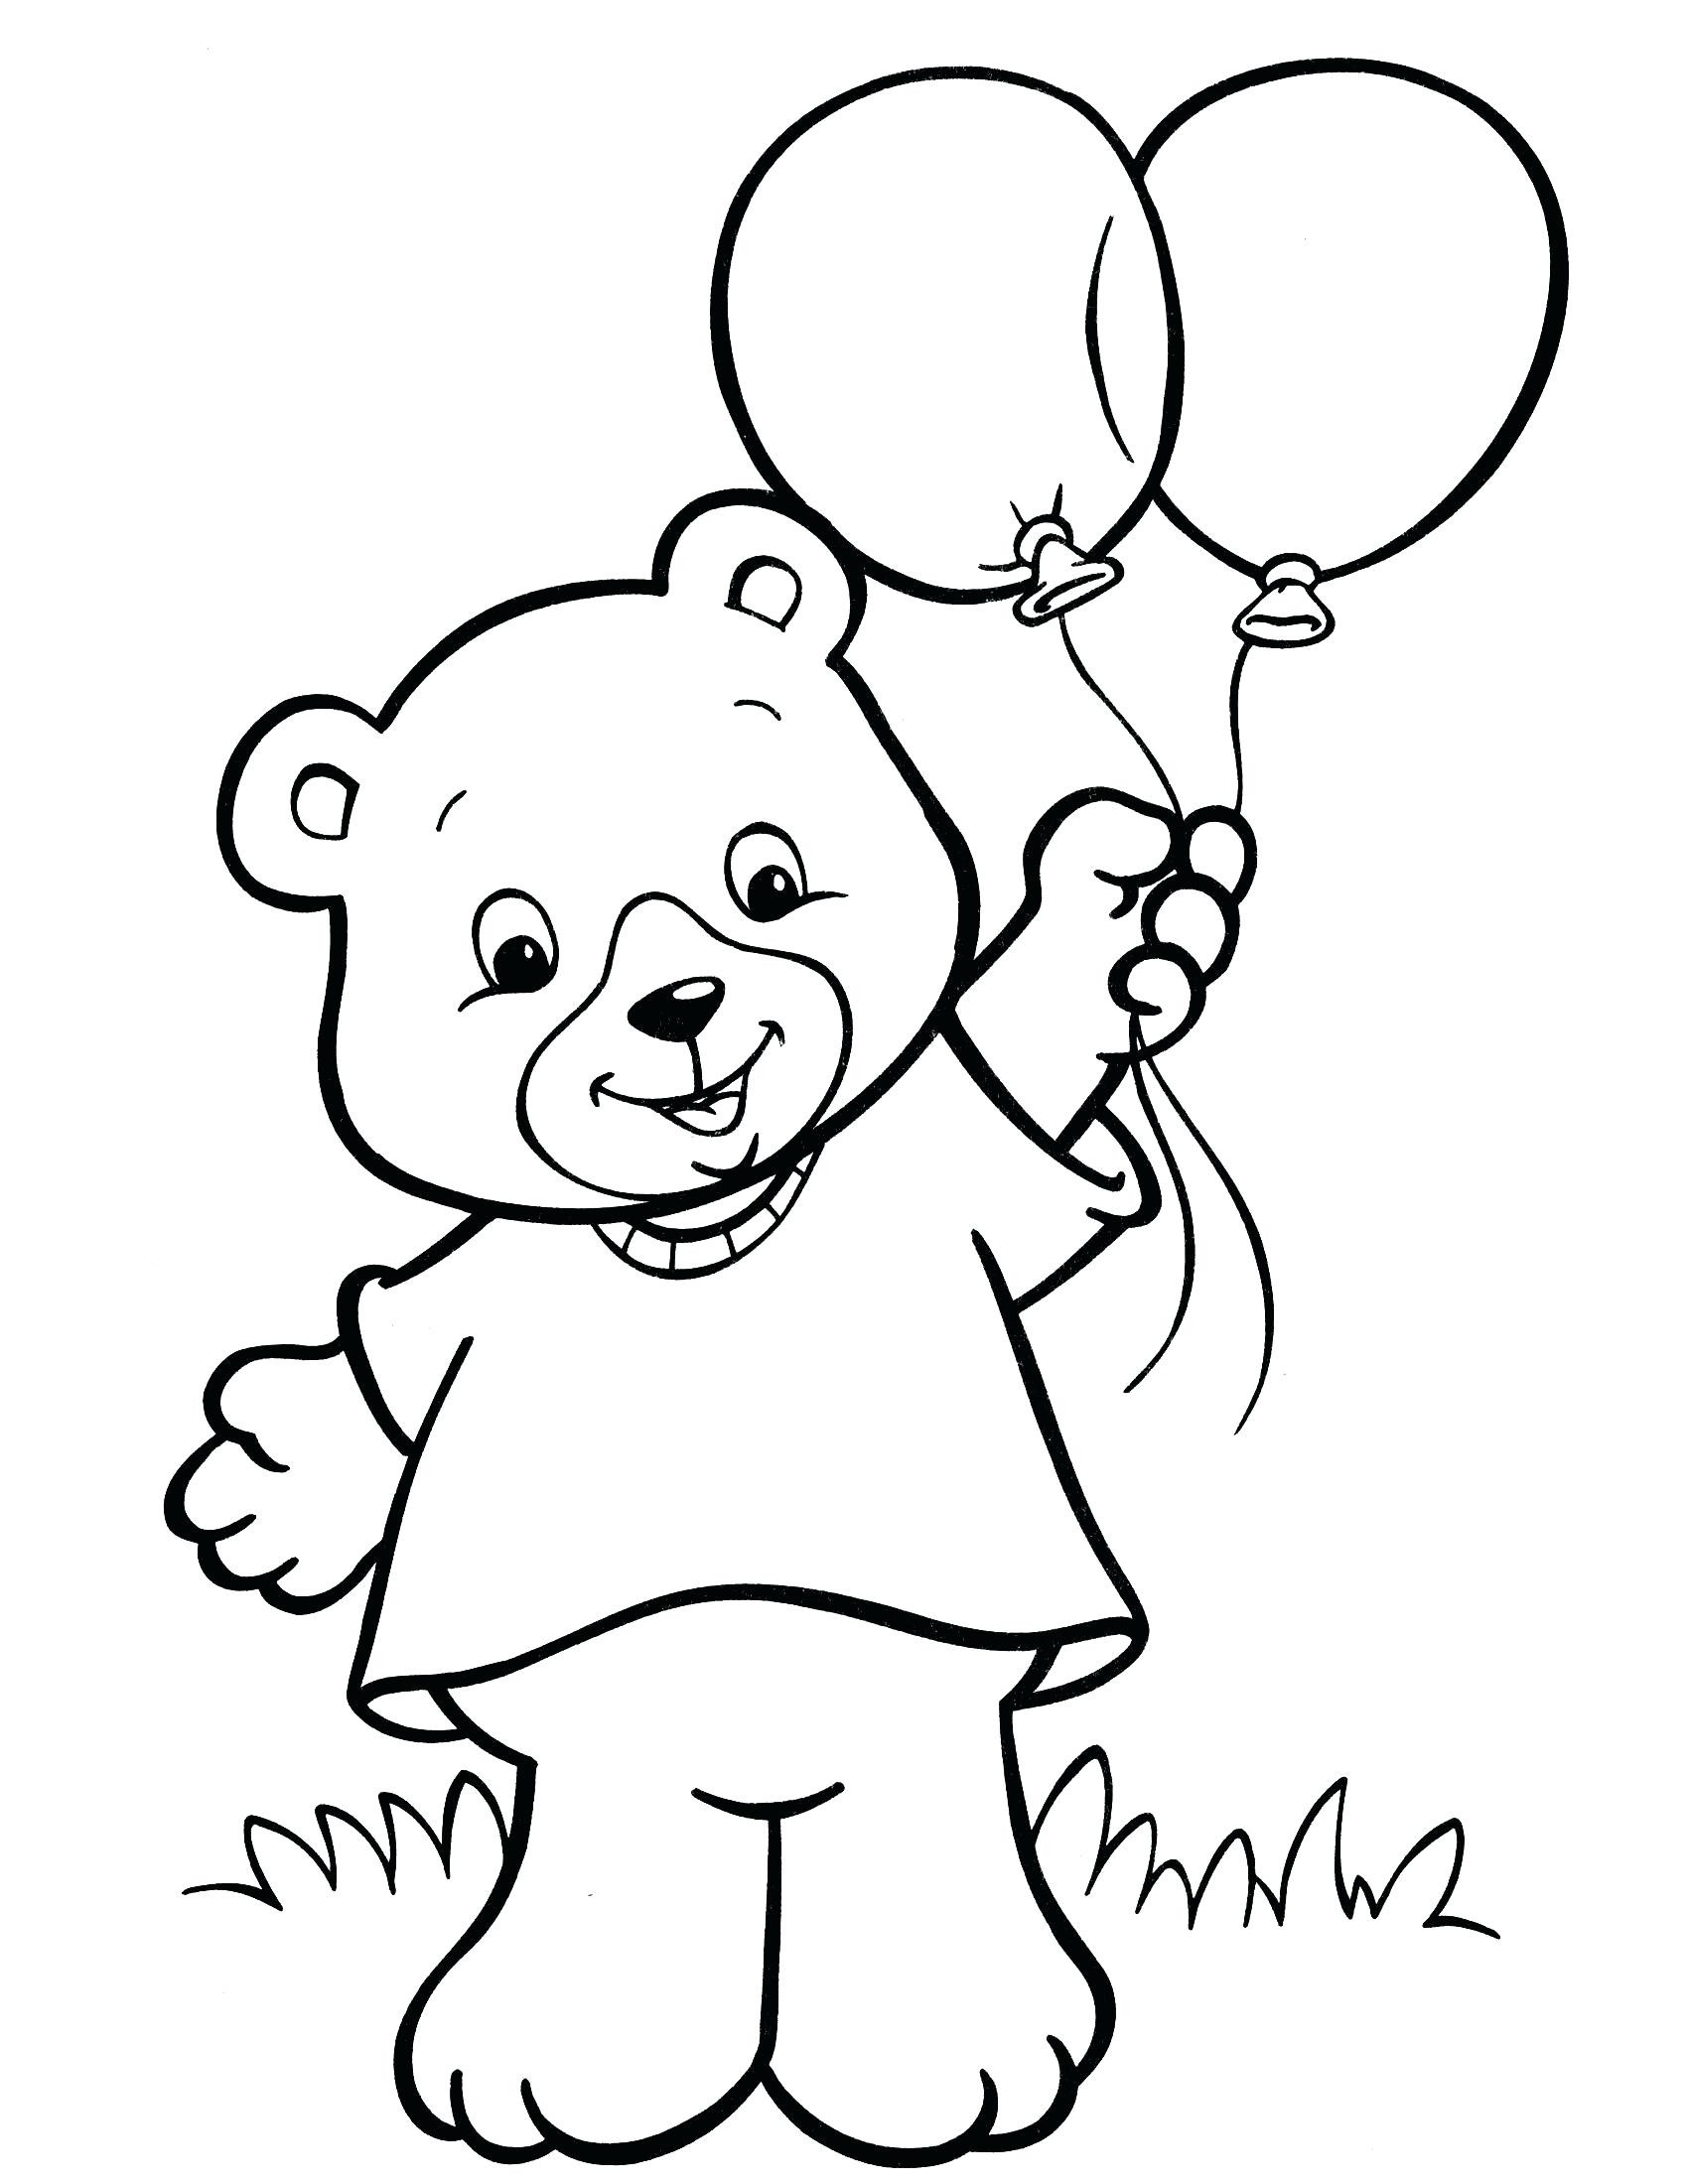 Excellent Free Printable Coloring Pages For 2 Year Olds | Belindalittle - Free Printable Coloring Pages For 2 Year Olds